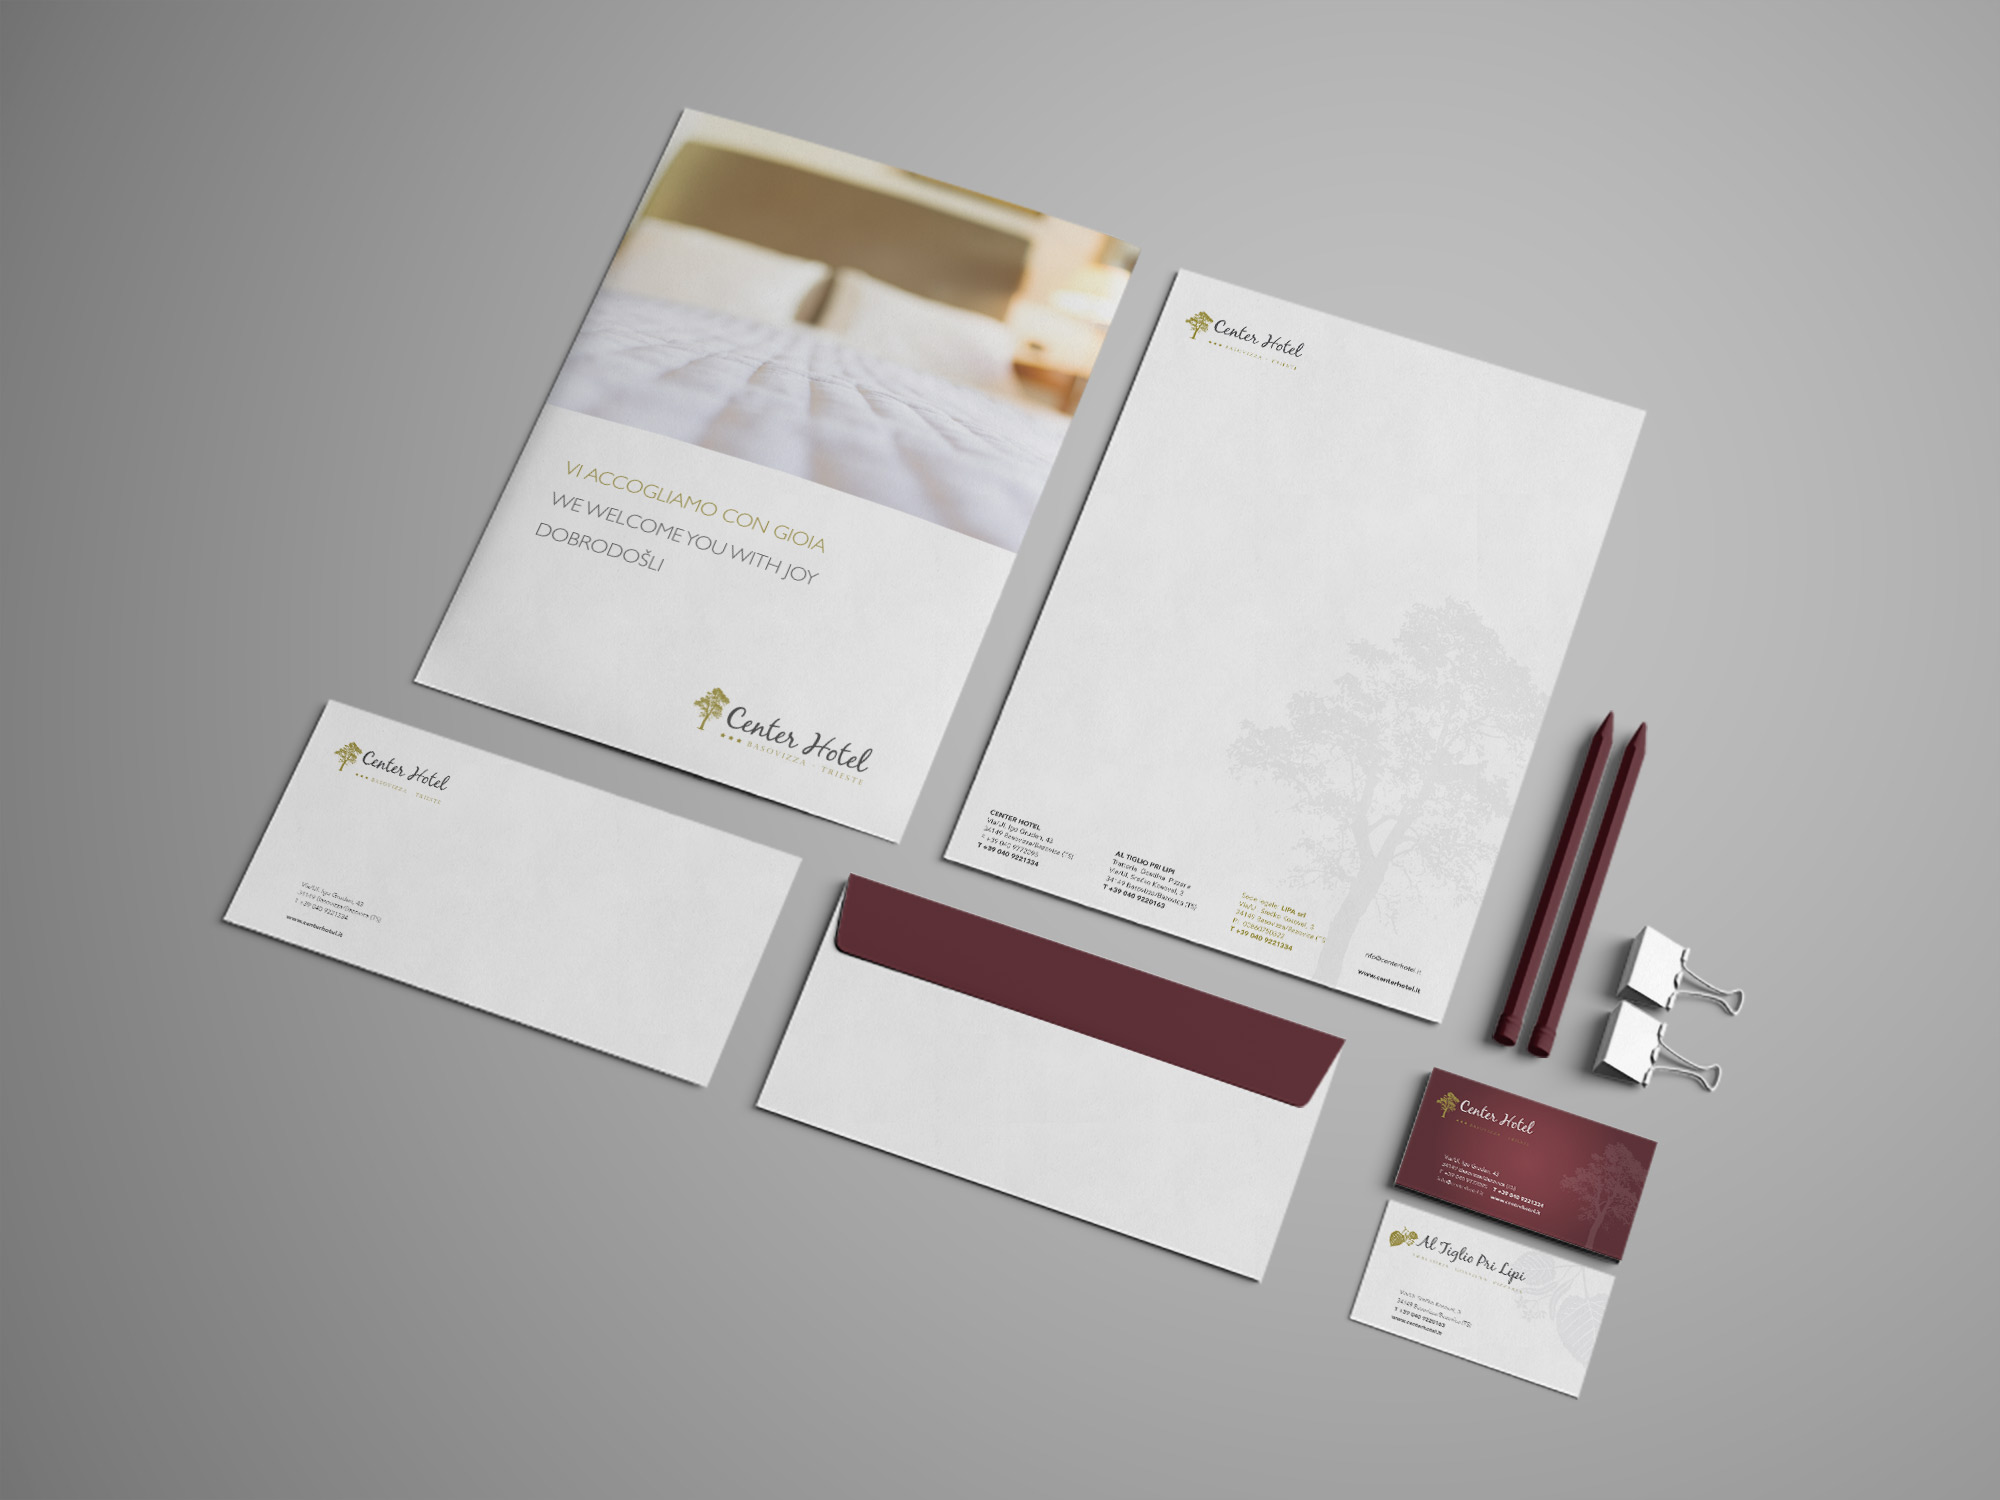 GRafica360_CENTERHOTEL_Stationery_1